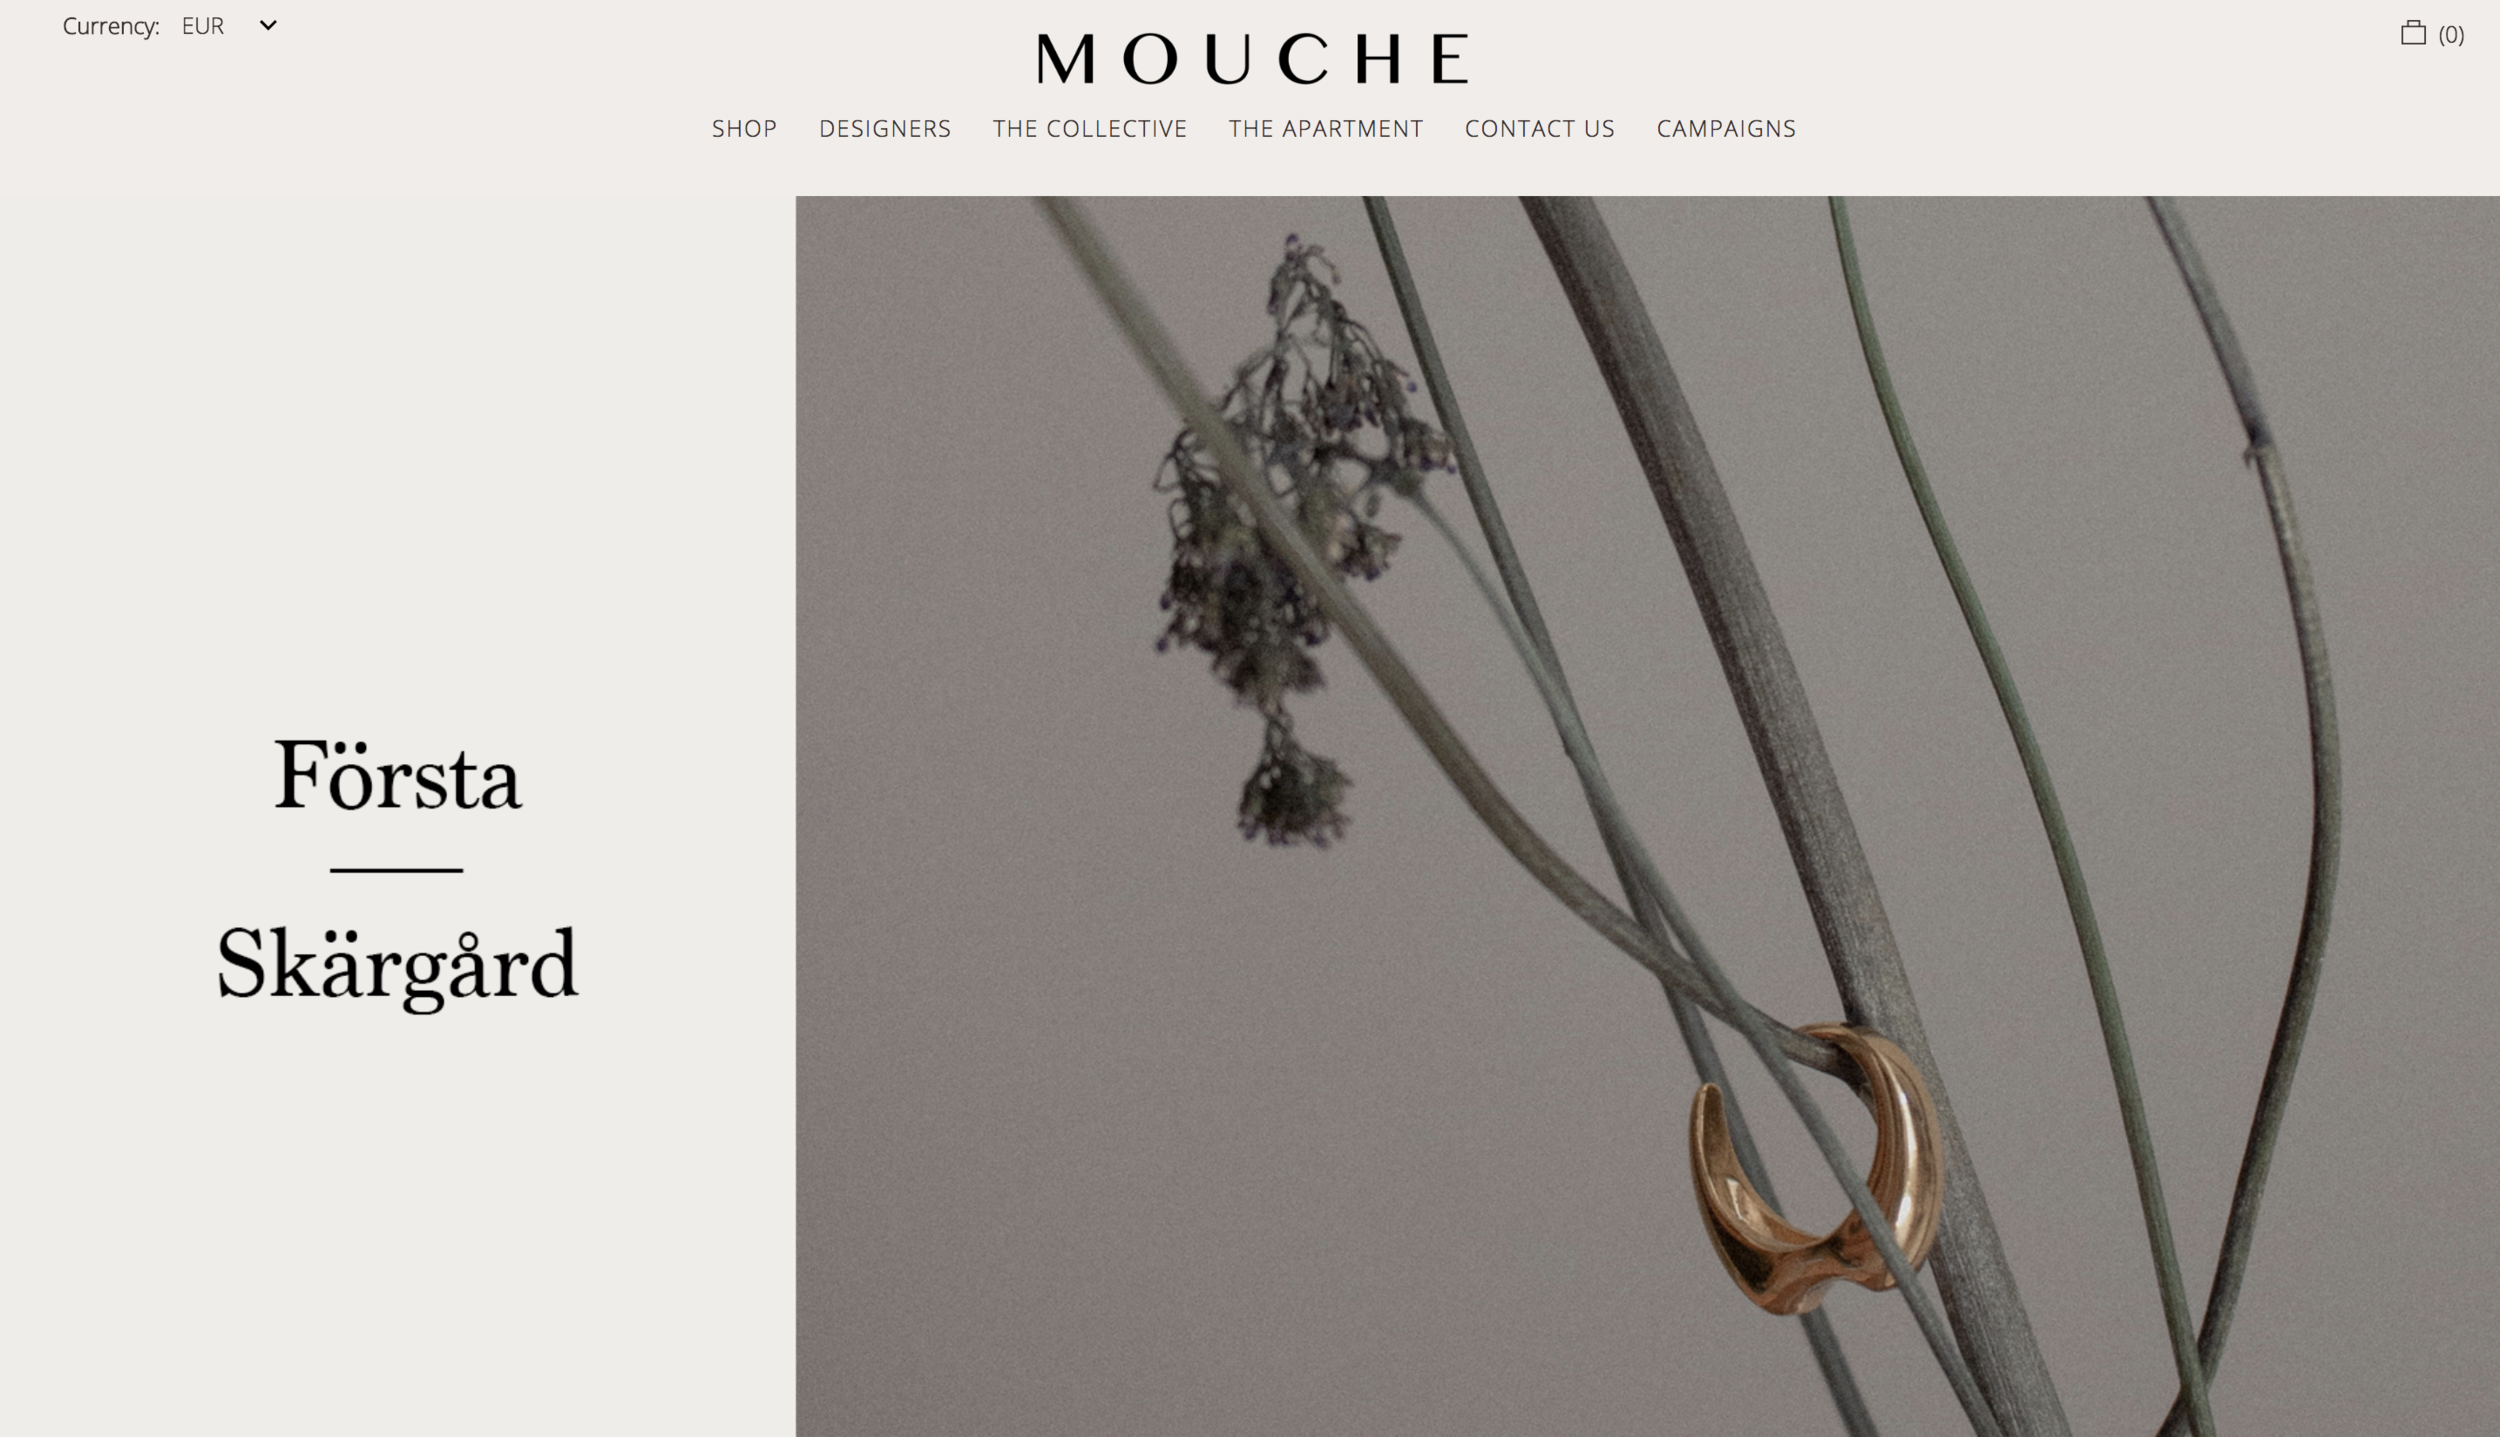 mouche homepage1.png